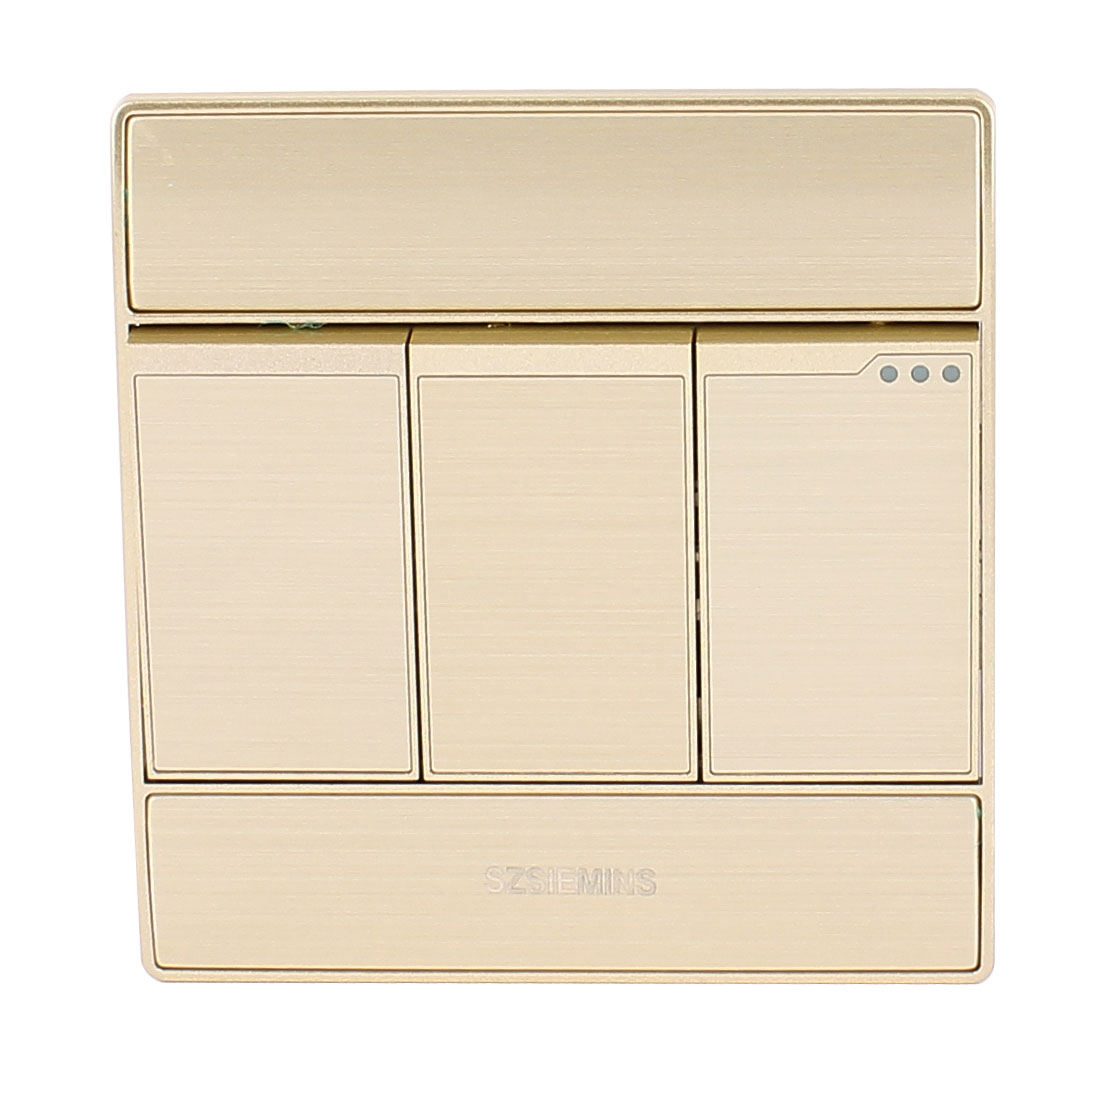 AC 250V 10A 3 Gang 1 Way On/Off Aluminum Press Button Wall Mounting Switch Light Control Champagne Gold